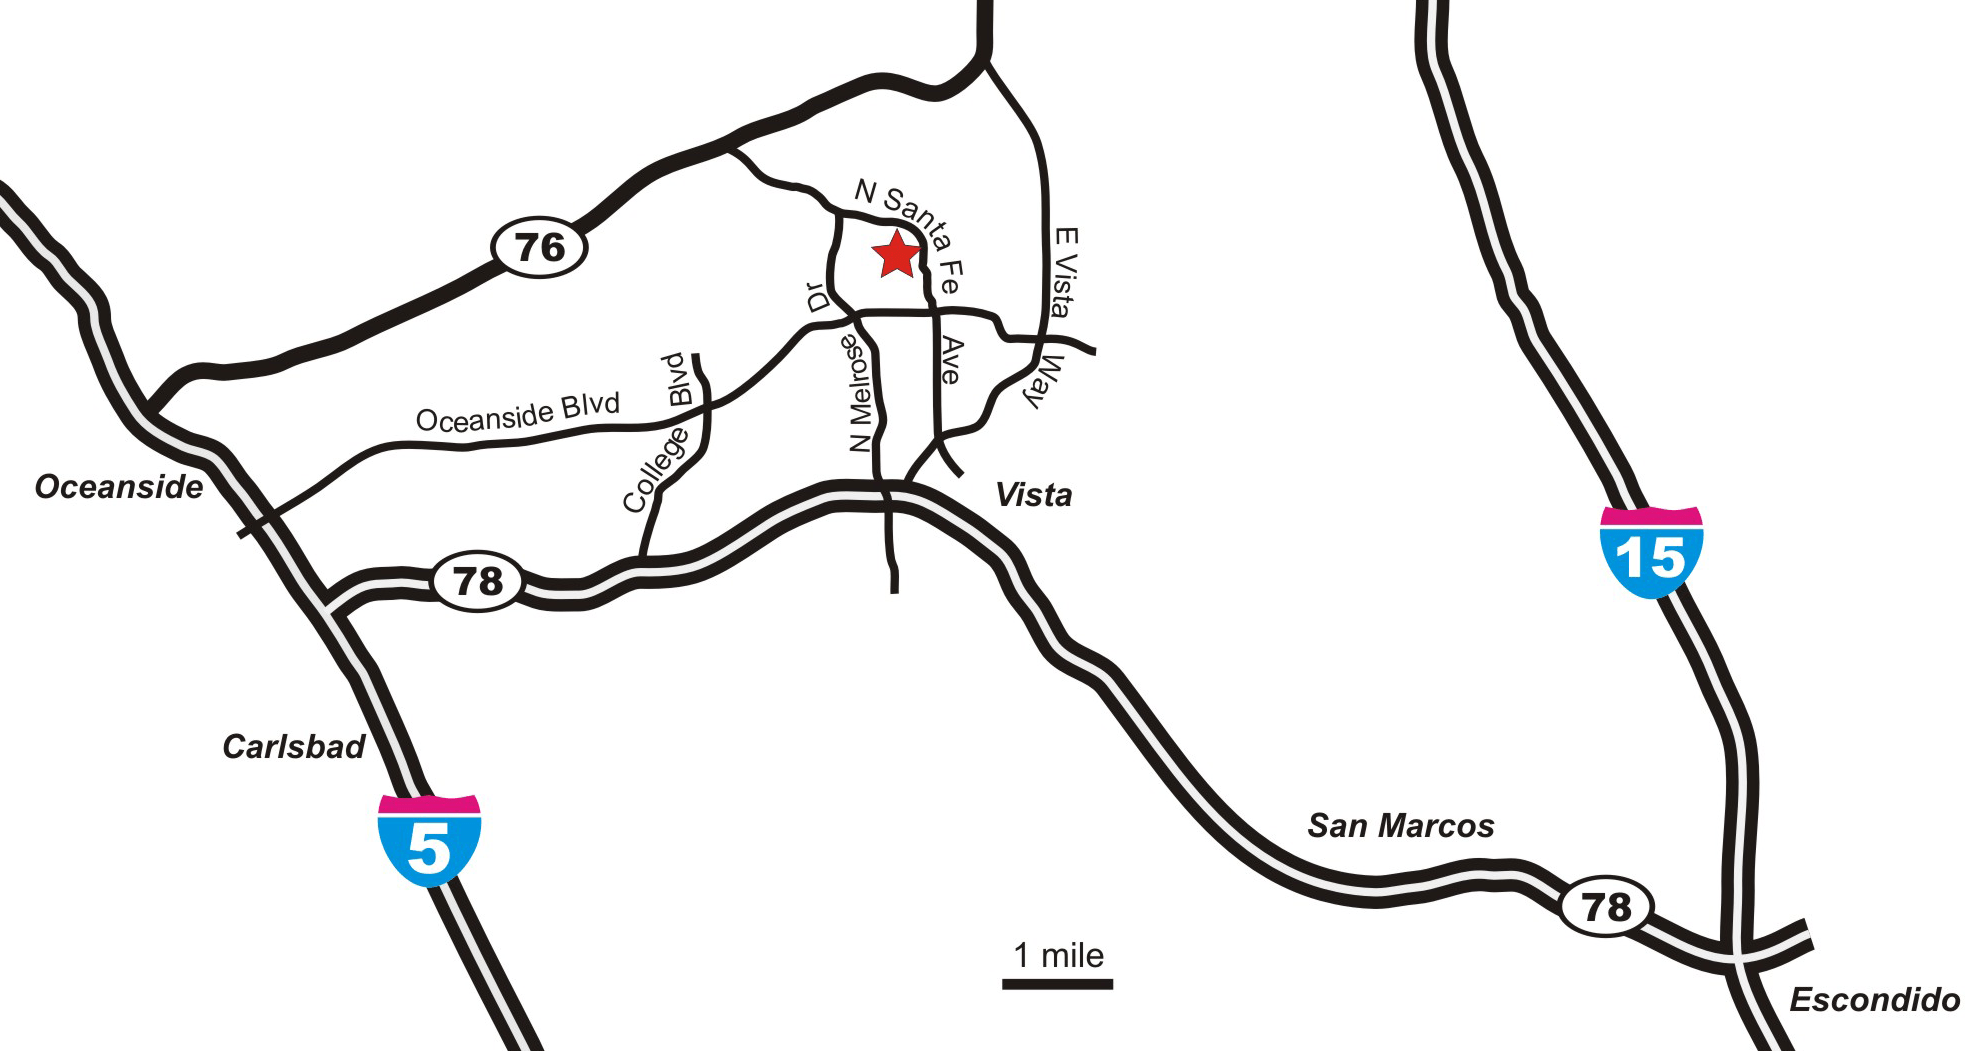 Location And Directions